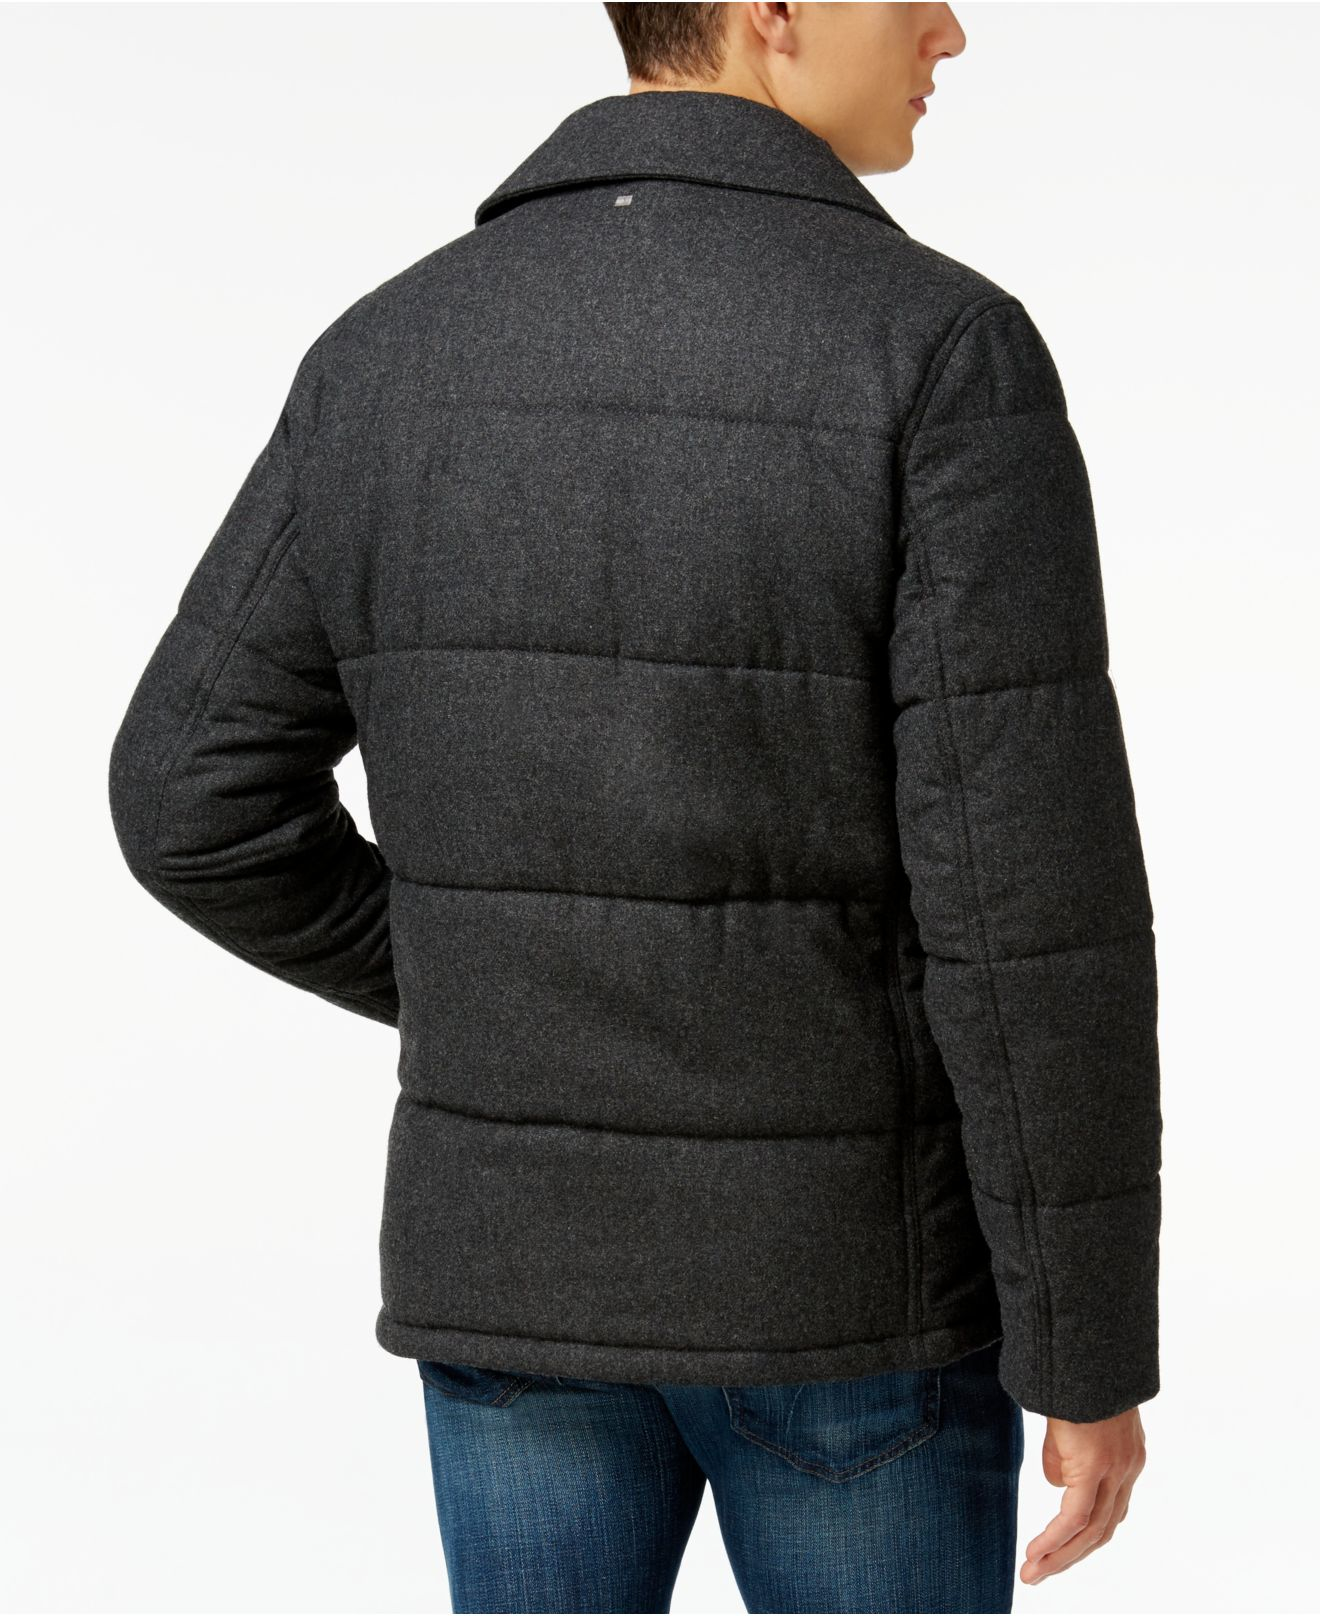 Lyst - Tommy hilfiger Ash Quilted Peacoat in Gray for Men : quilted pea coat - Adamdwight.com